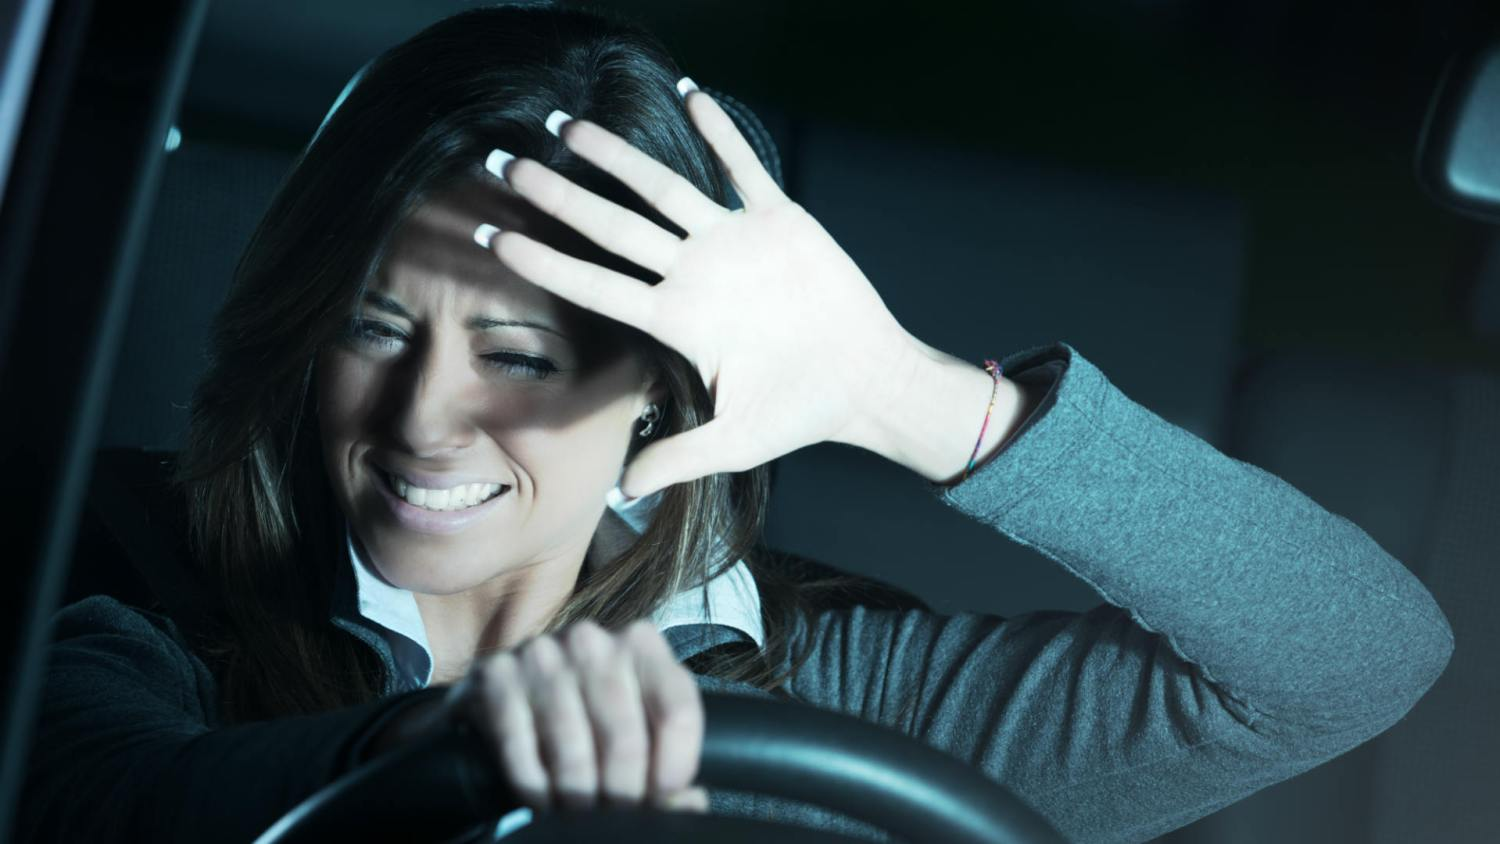 Glare when driving in the dark